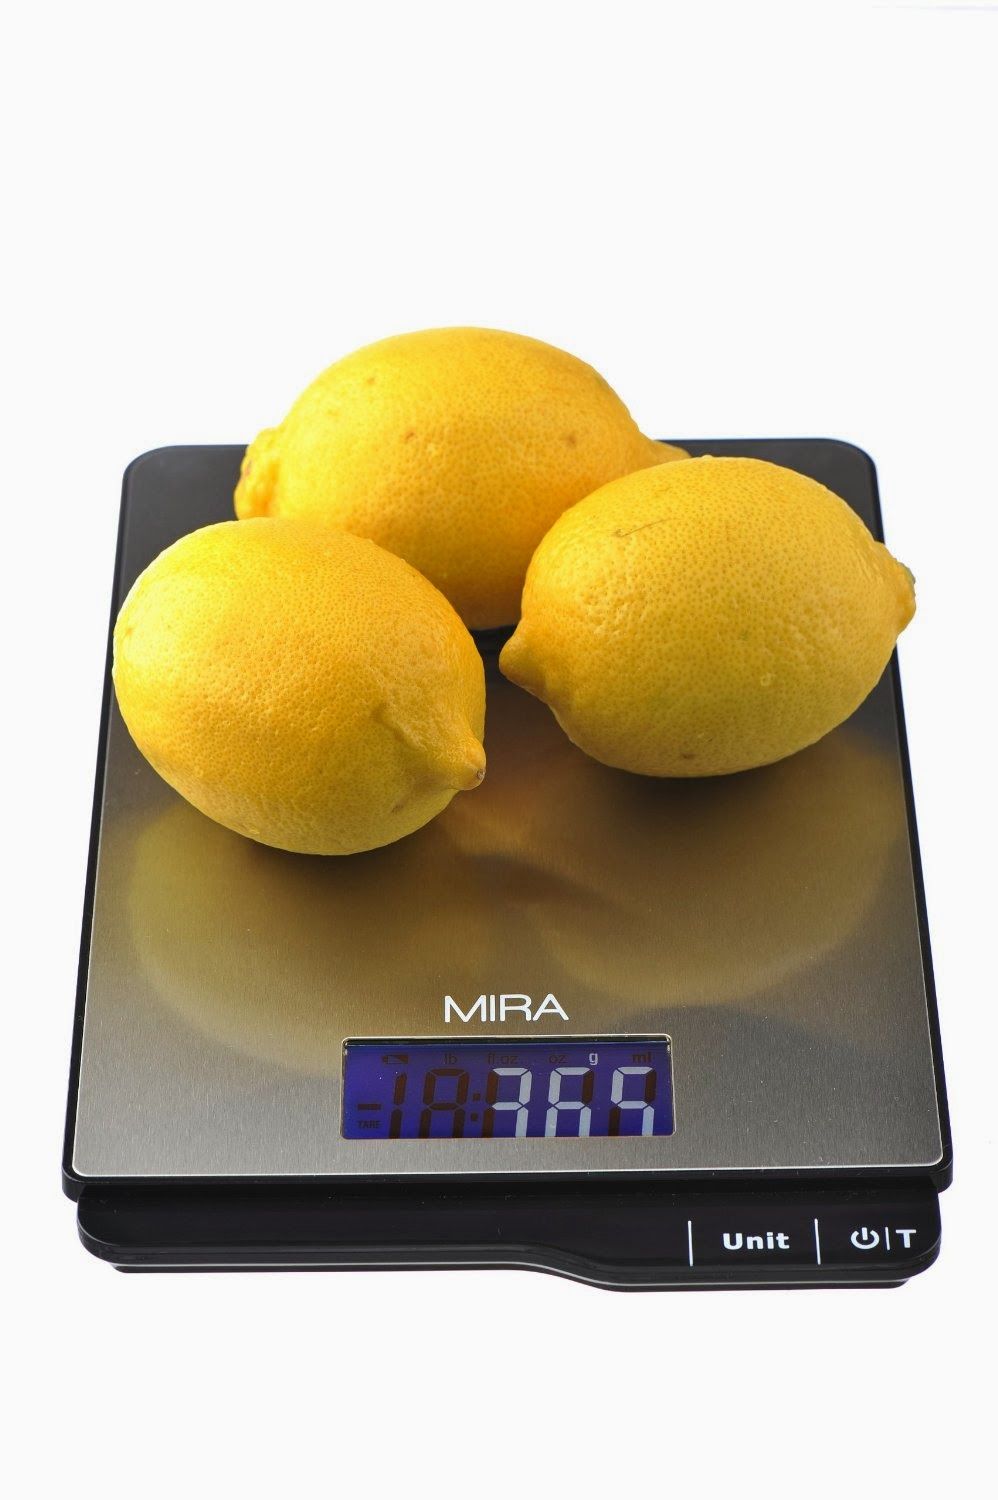 MIRA Stainless Steel Kitchen Scale Review